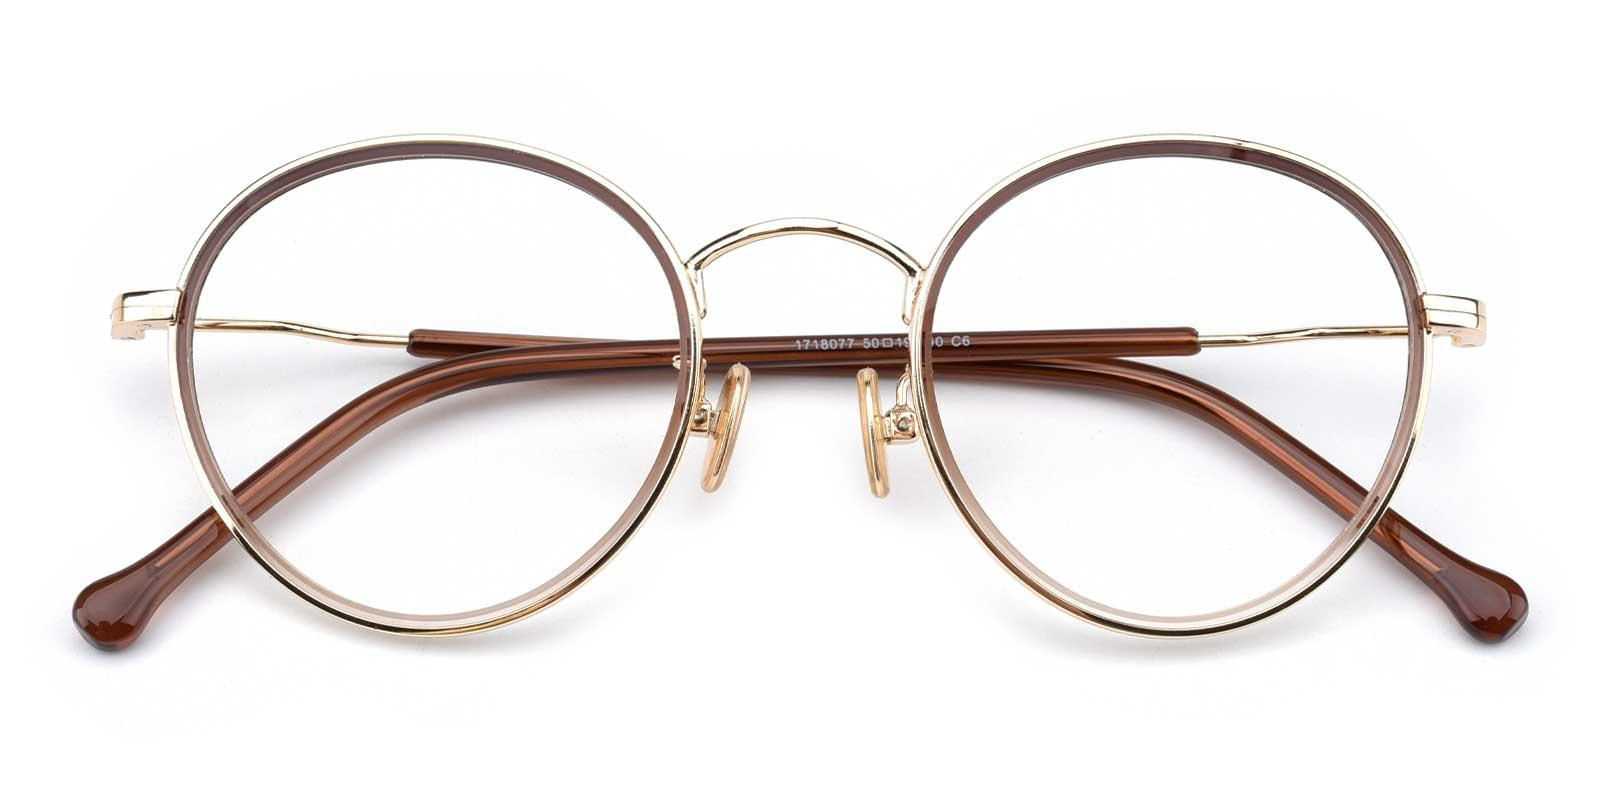 Jenny-Brown-Round-Combination-Eyeglasses-detail